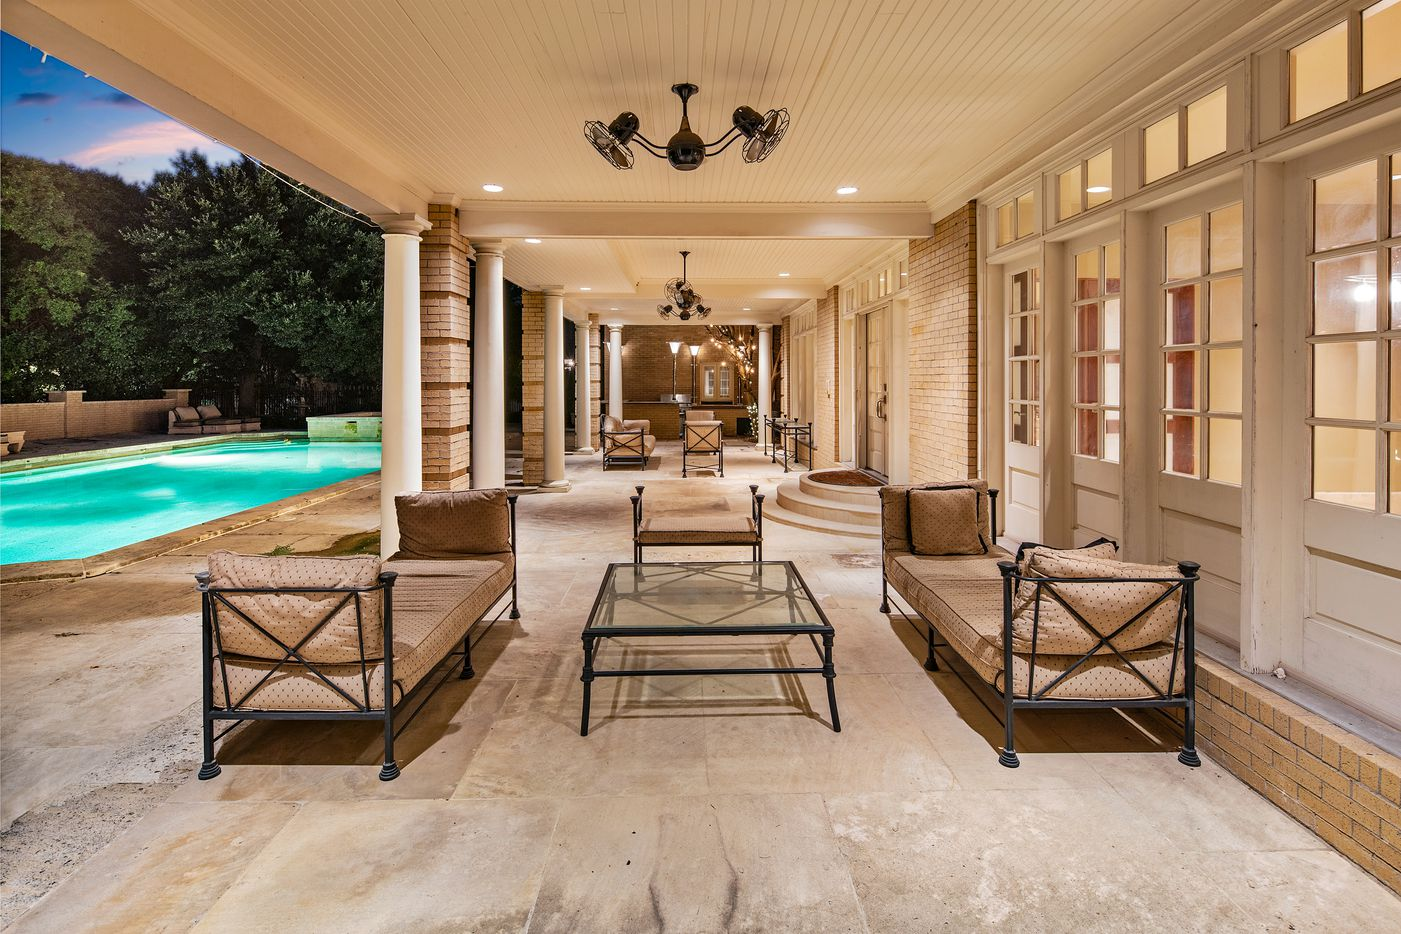 A look at the property on 5323 Swiss Avenue in Dallas, Texas.